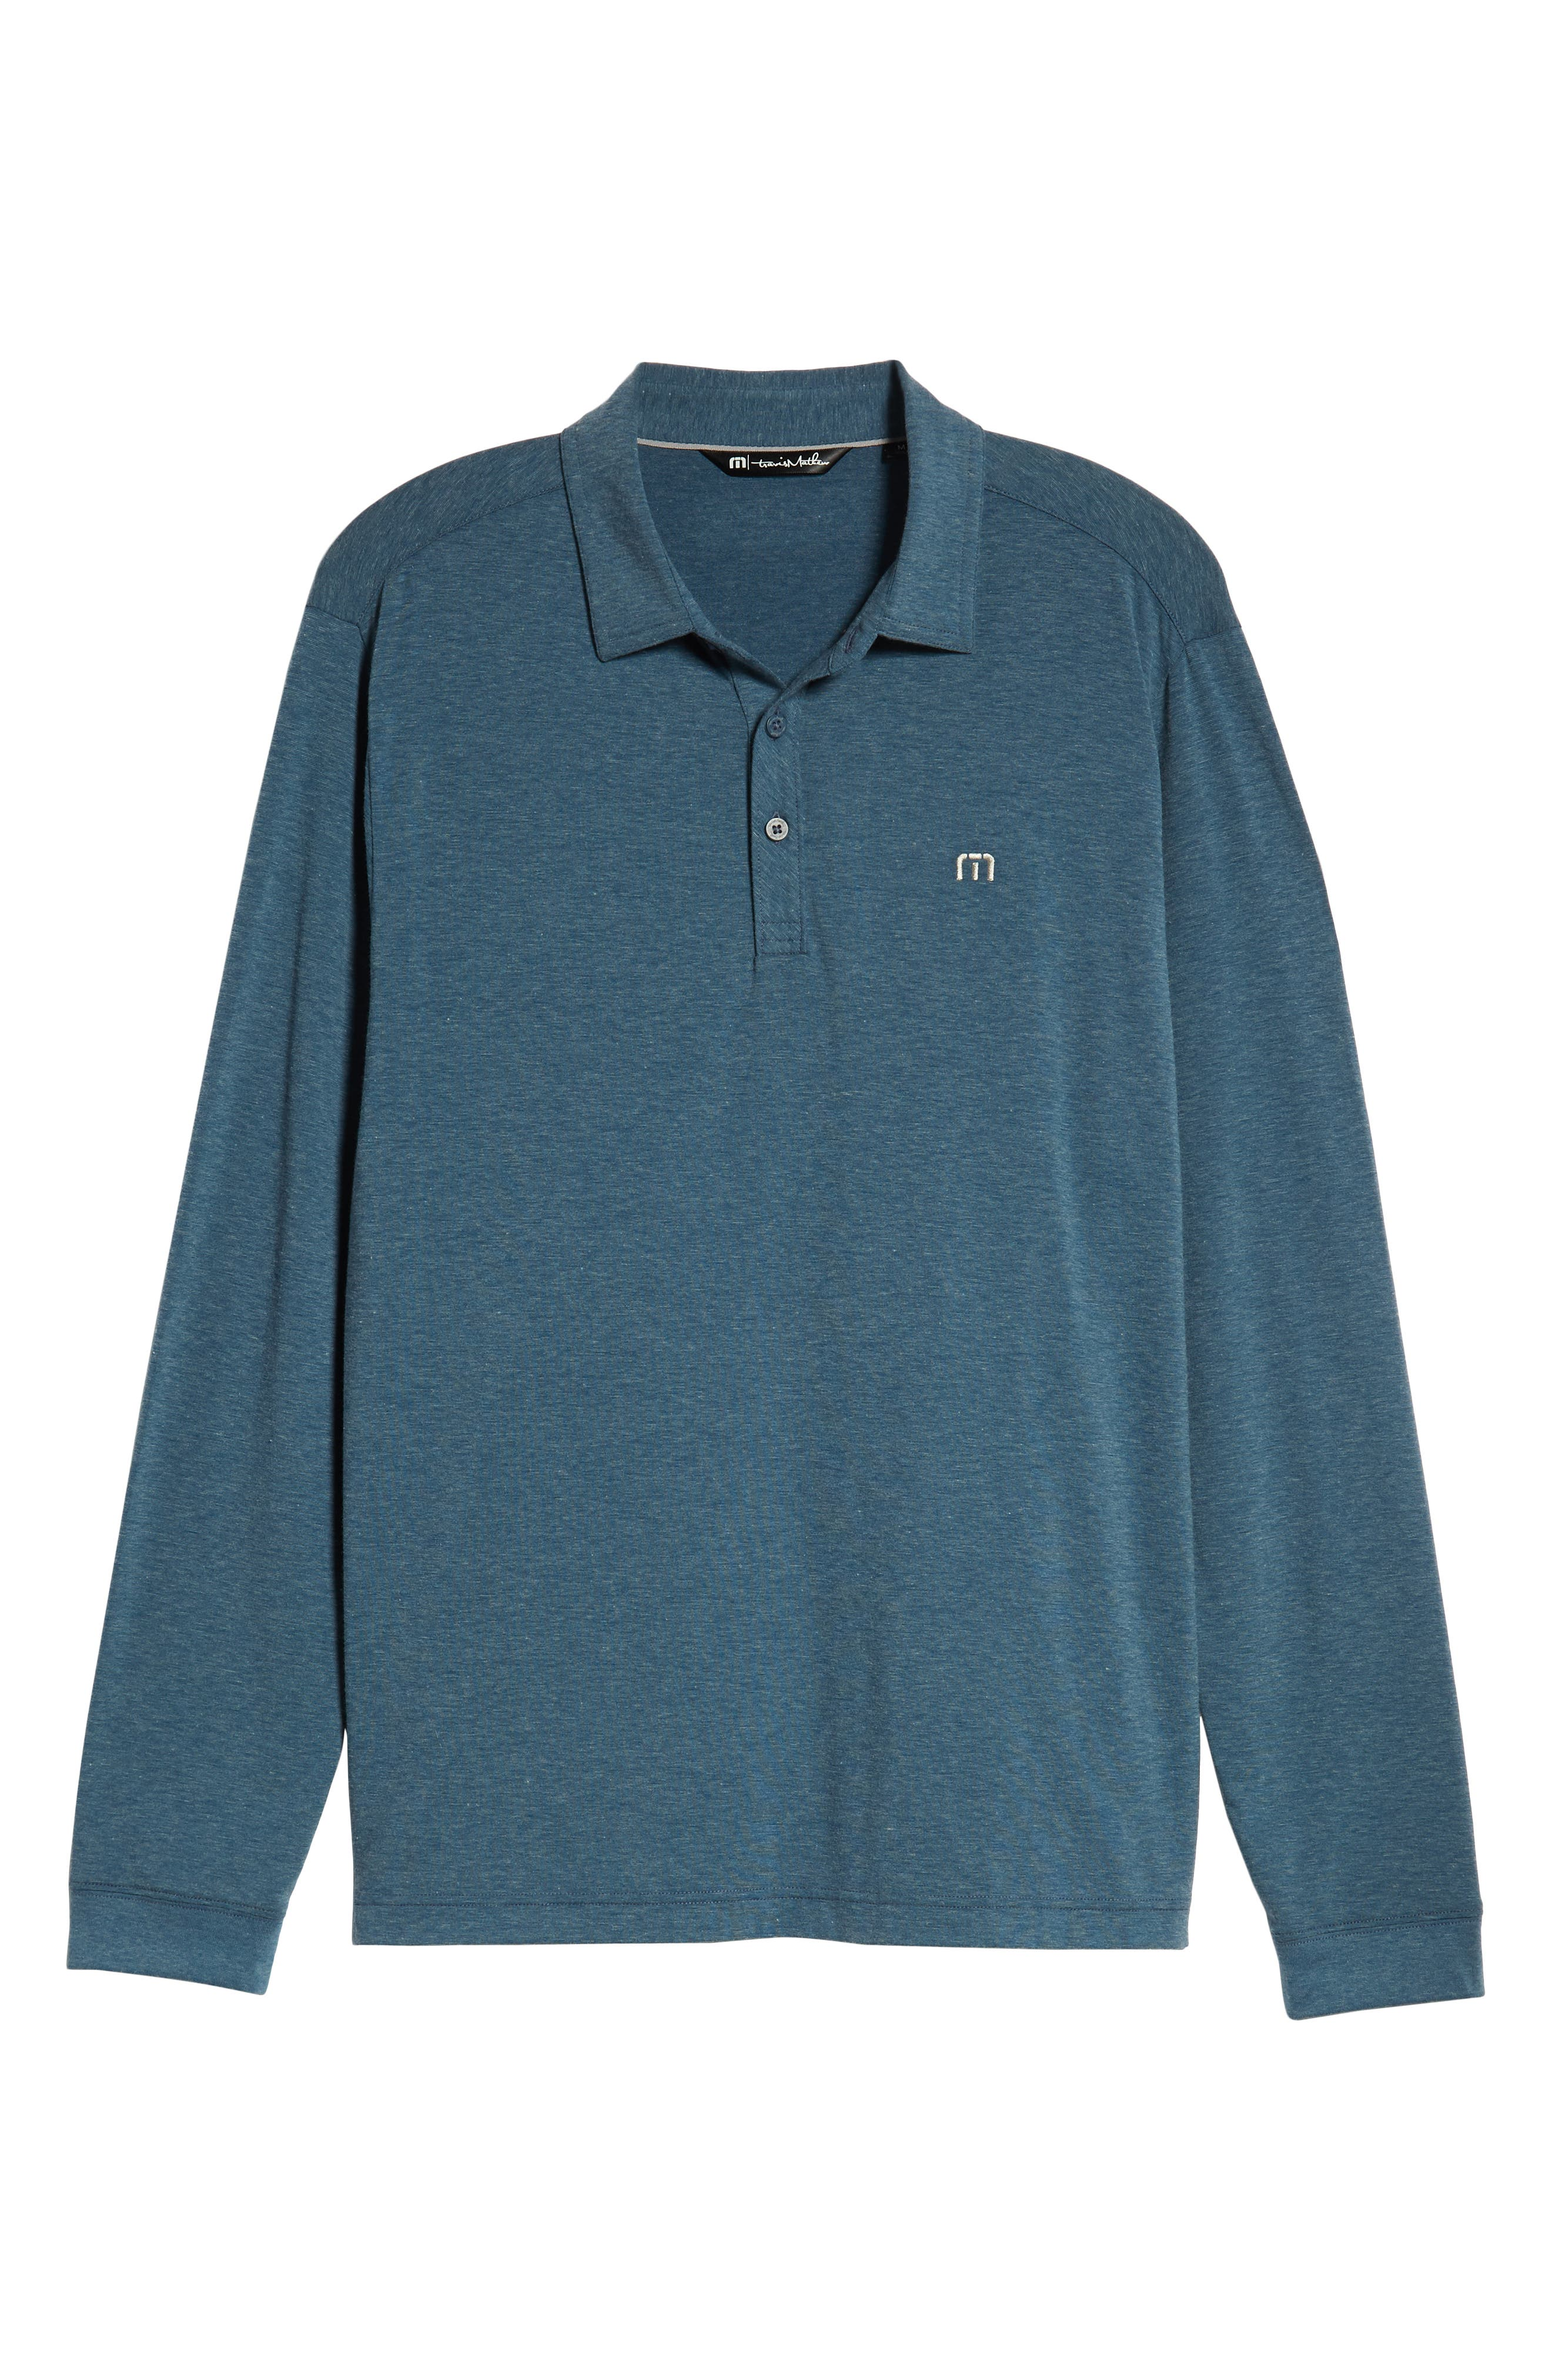 Backup Plan Regular Fit Polo,                             Alternate thumbnail 6, color,                             TRADEWINDS/ BLUE WING TEAL